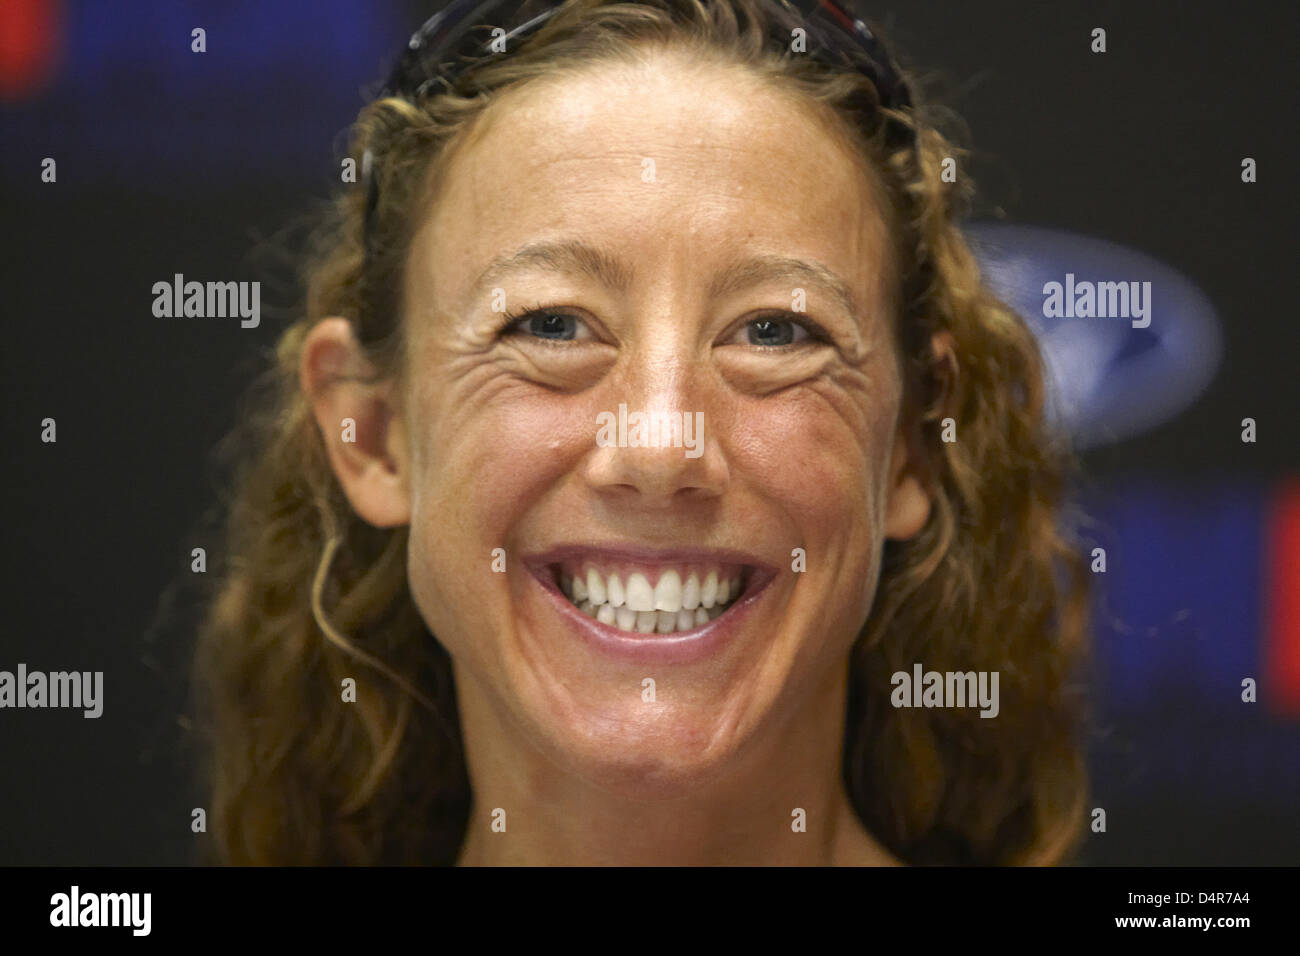 ... a press conference for the Ironman <b>Triathlon World</b> Championships Stock - british-triathlete-chrissie-wellington-smiles-during-a-press-conference-D4R7A4